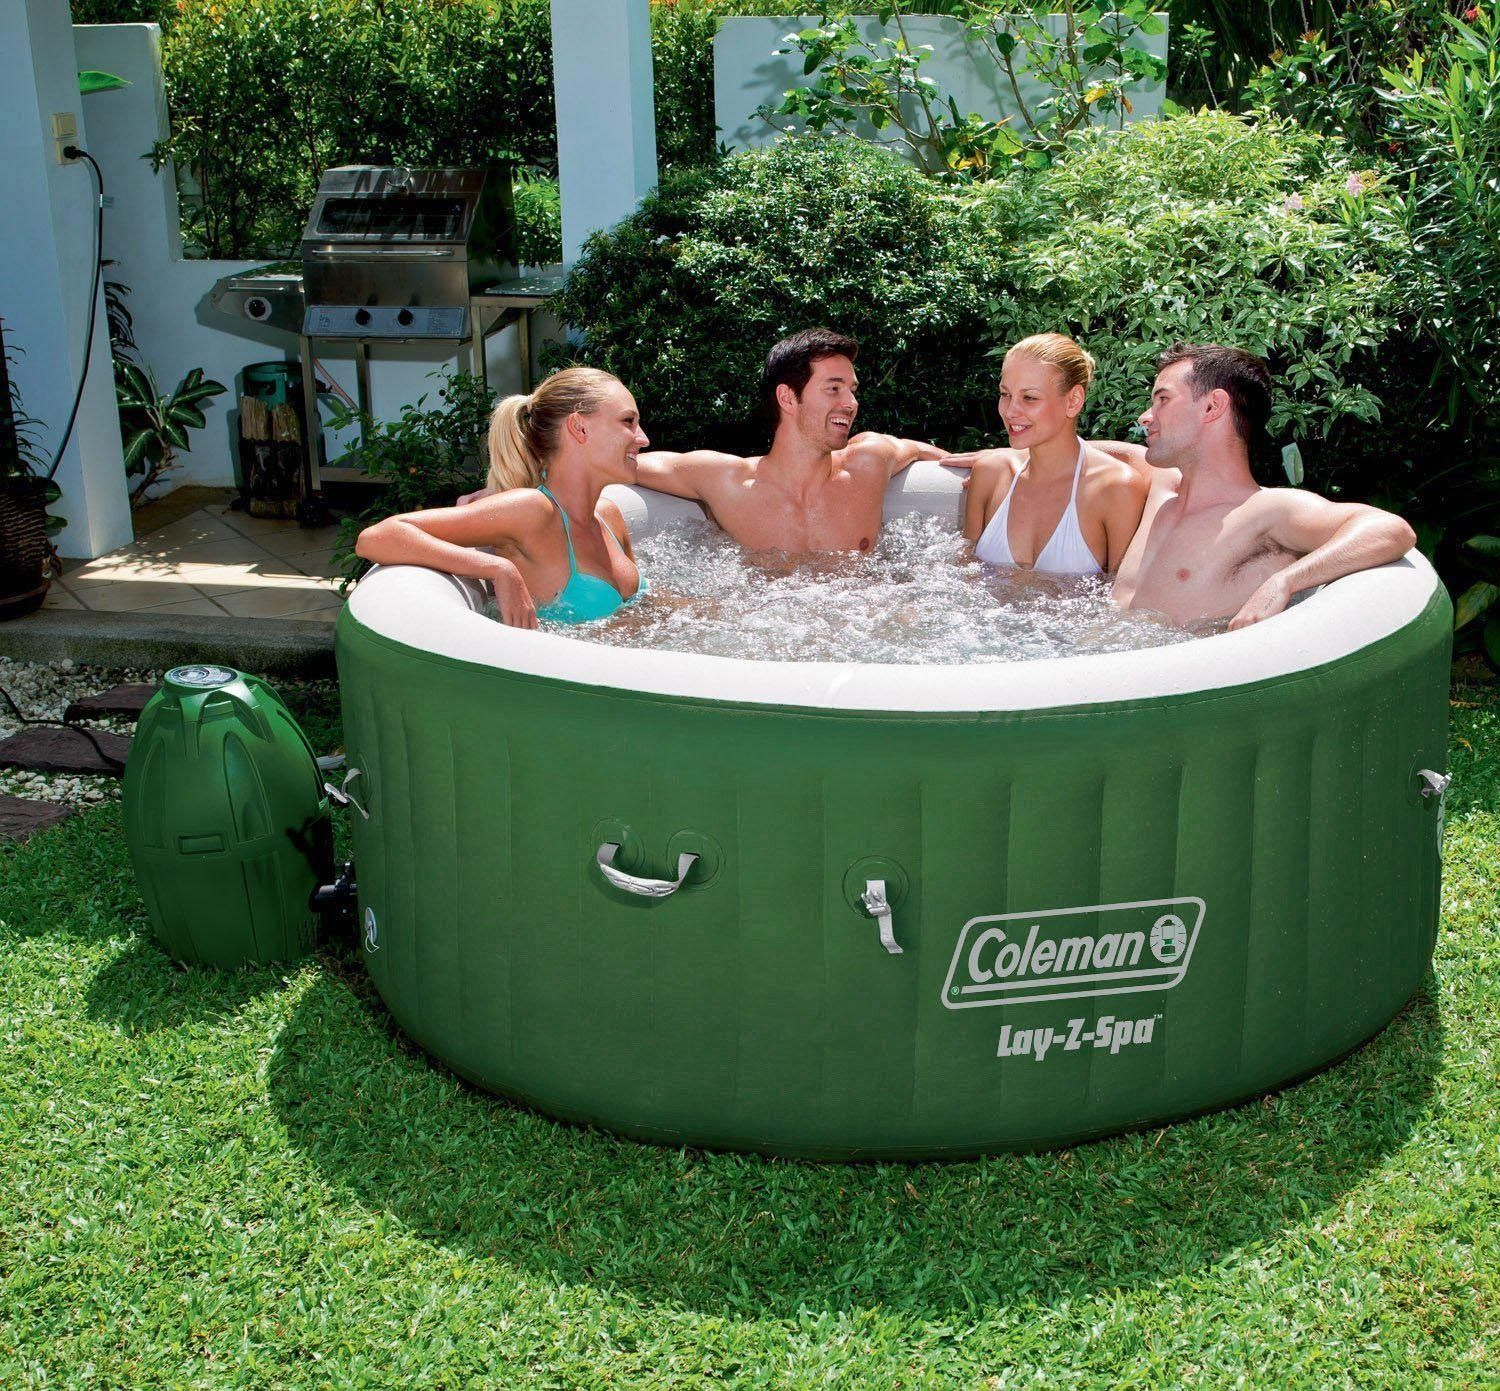 Cheap Outdoor Jacuzzi Hot Tubs | Jacuzzi outdoor | Pinterest | Hot ...